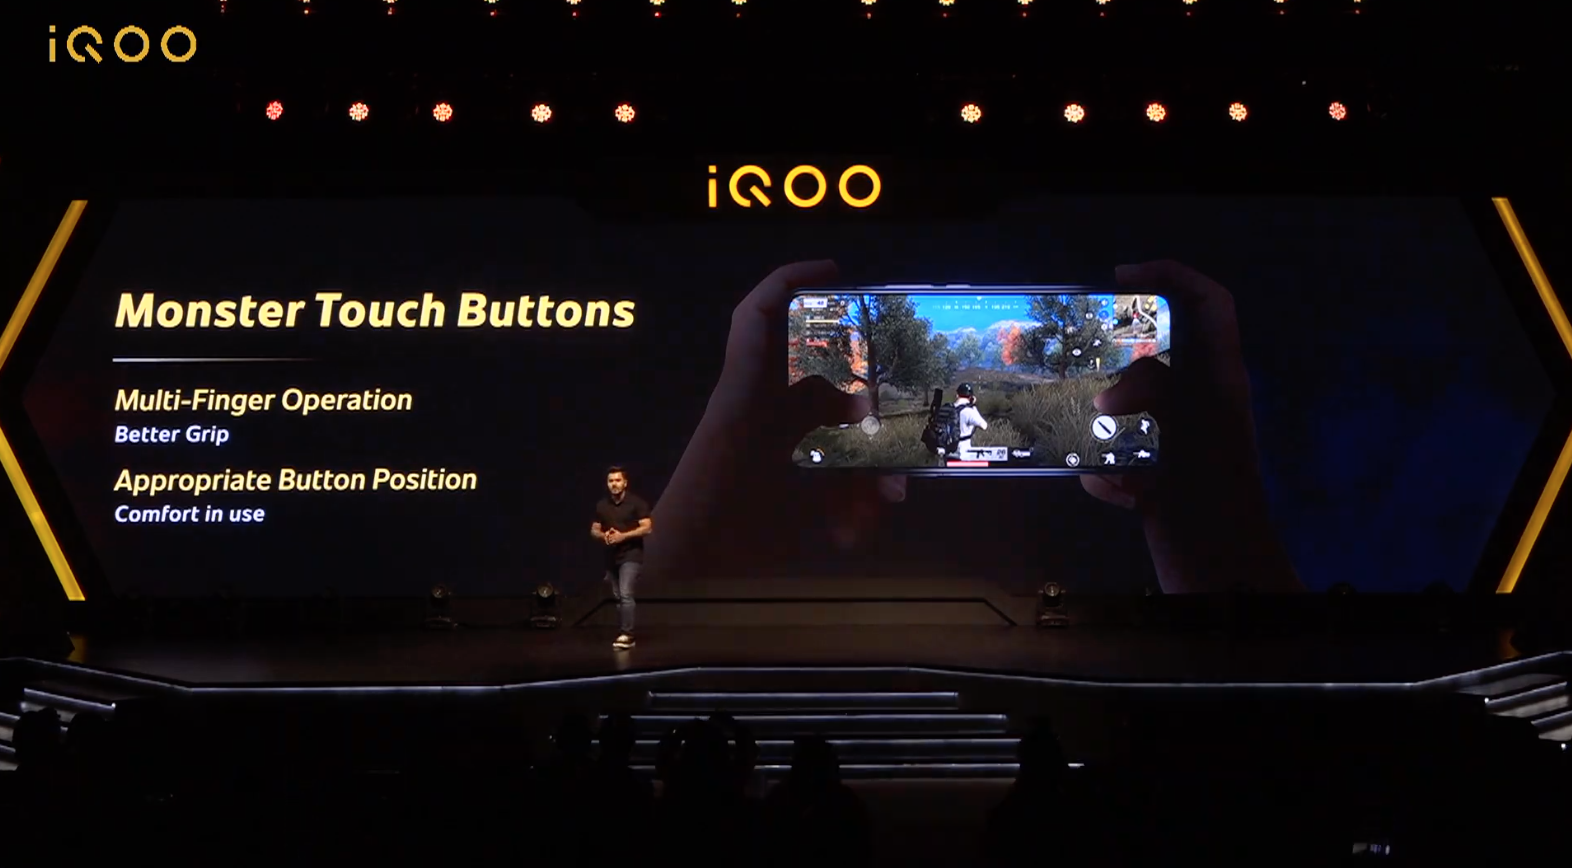 The iQOO 3 is a 5G gaming phone with Monster Touch Buttons 1